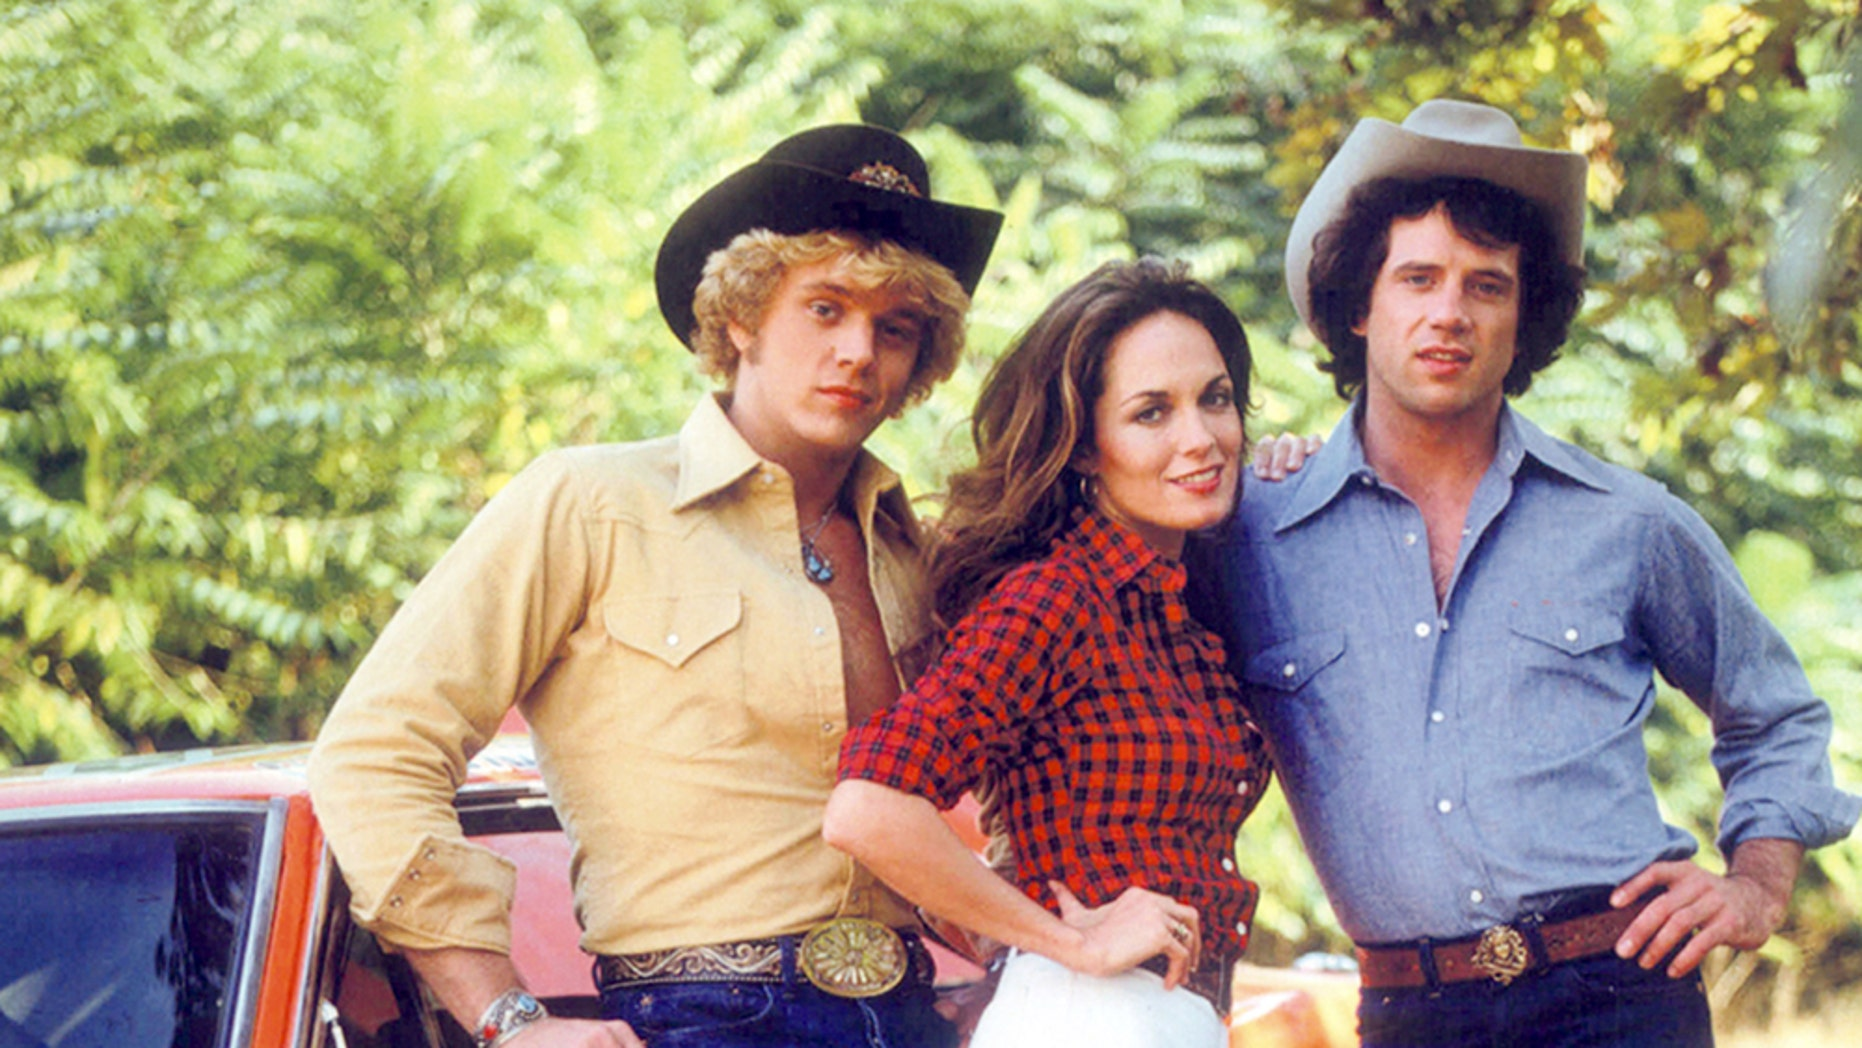 John Schneider, Catherine Bach and Tom Wopat in a promotional portrait for the TV show 'The Dukes of Hazzard', circa 1980. They play Bo, Daisy and Luke Duke, respectively.